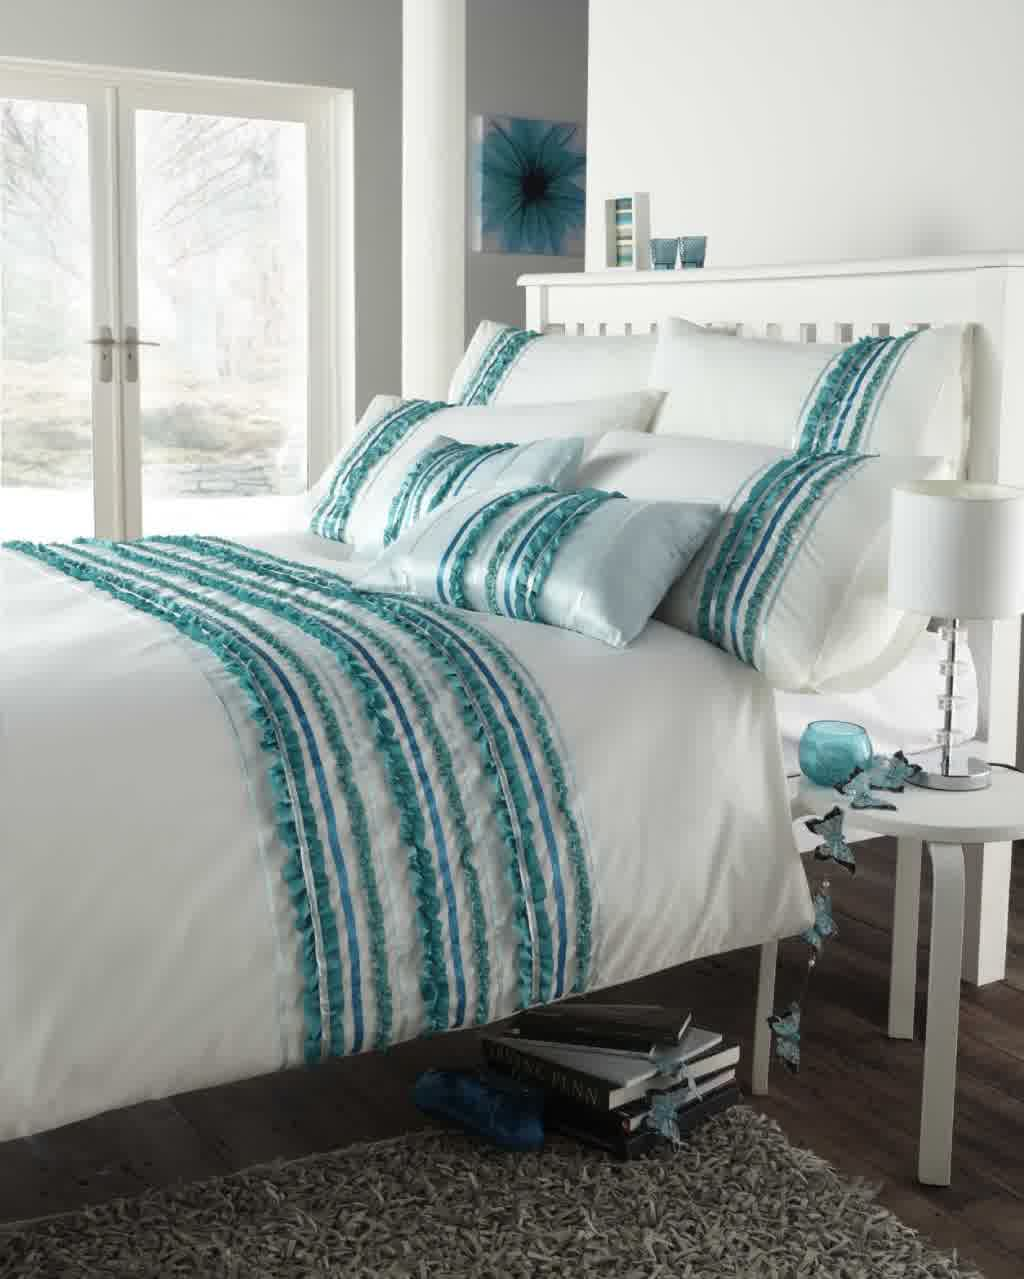 Turquoise Bed Set   Bedding Everything Turquoise, East End Living